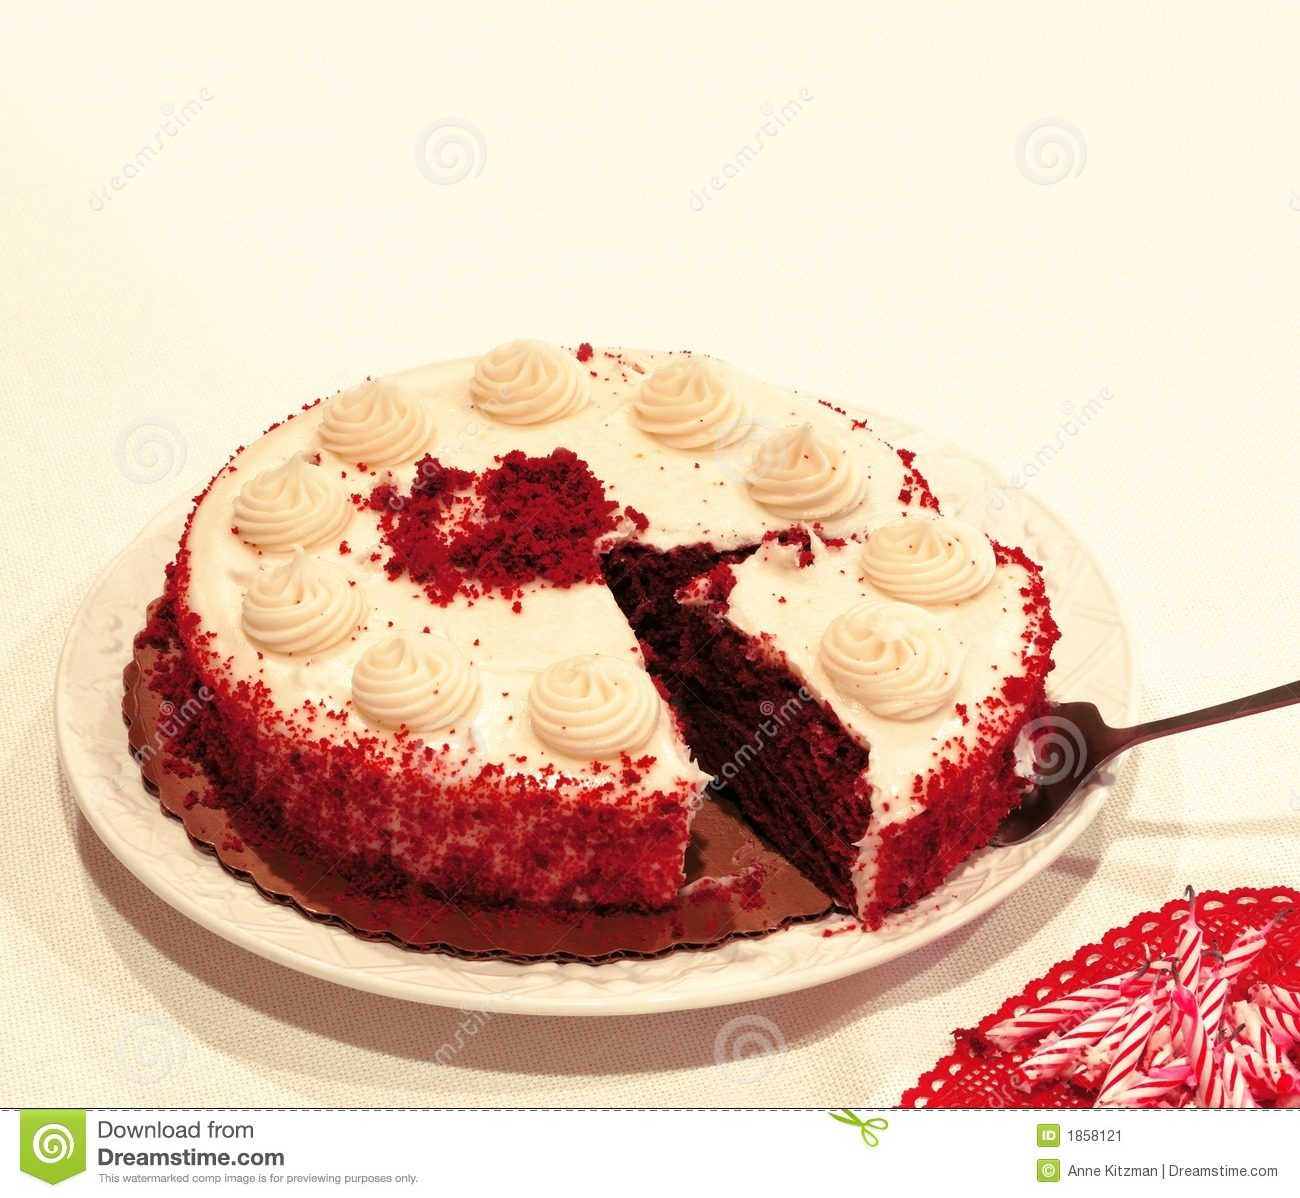 Red Velvet Chocolate Cake - Close-up of a red velvet chocolate cake ...